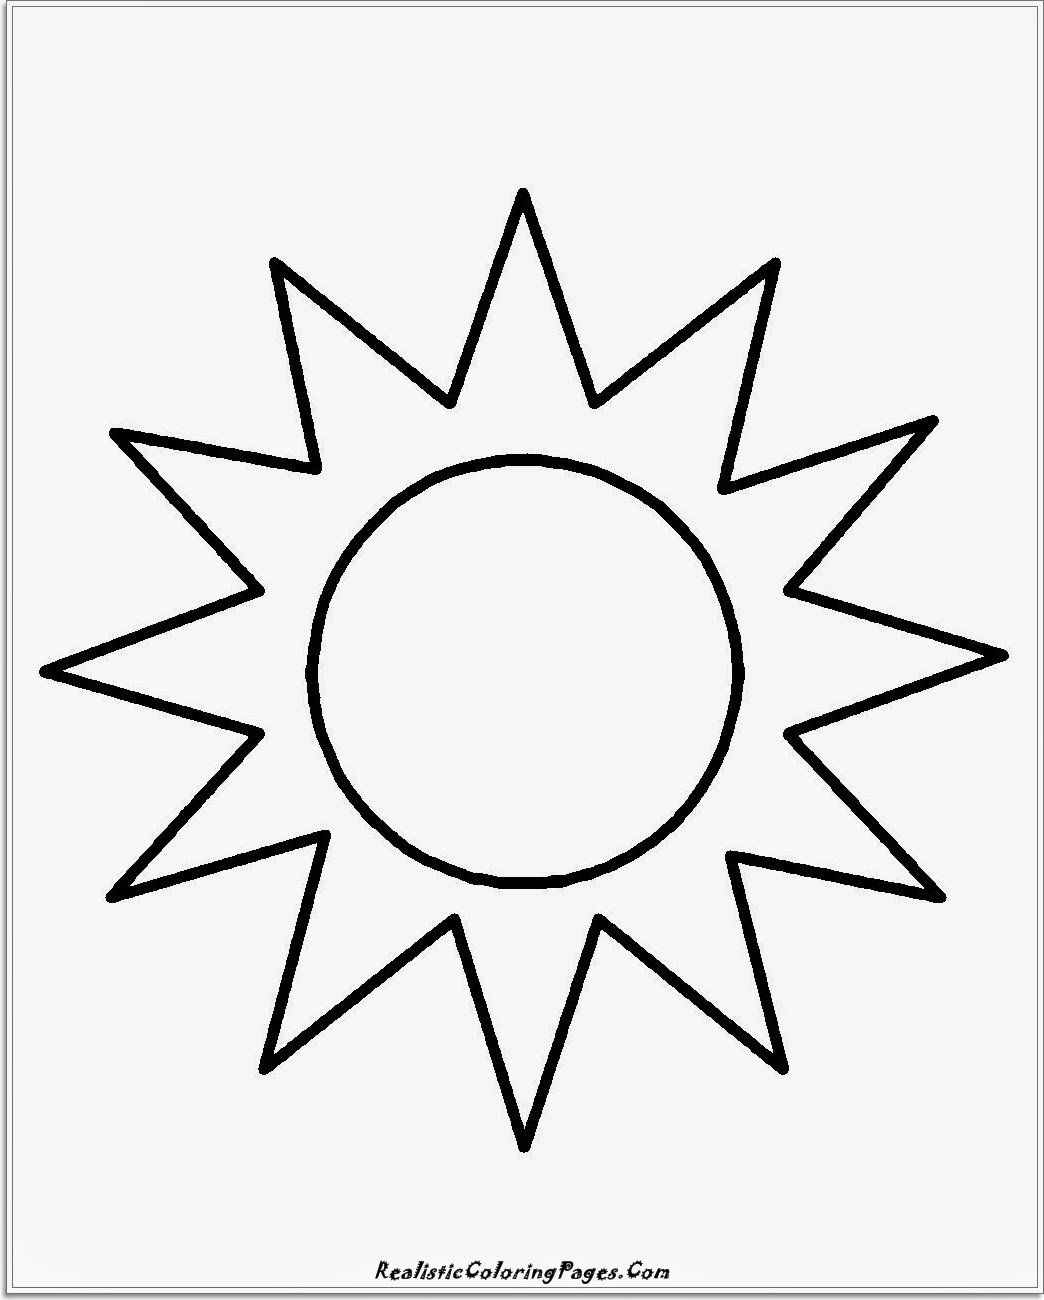 Adult Best Coloring Pages Simple Gallery Images beauty 14 simple nature coloring pages realistic star sun images